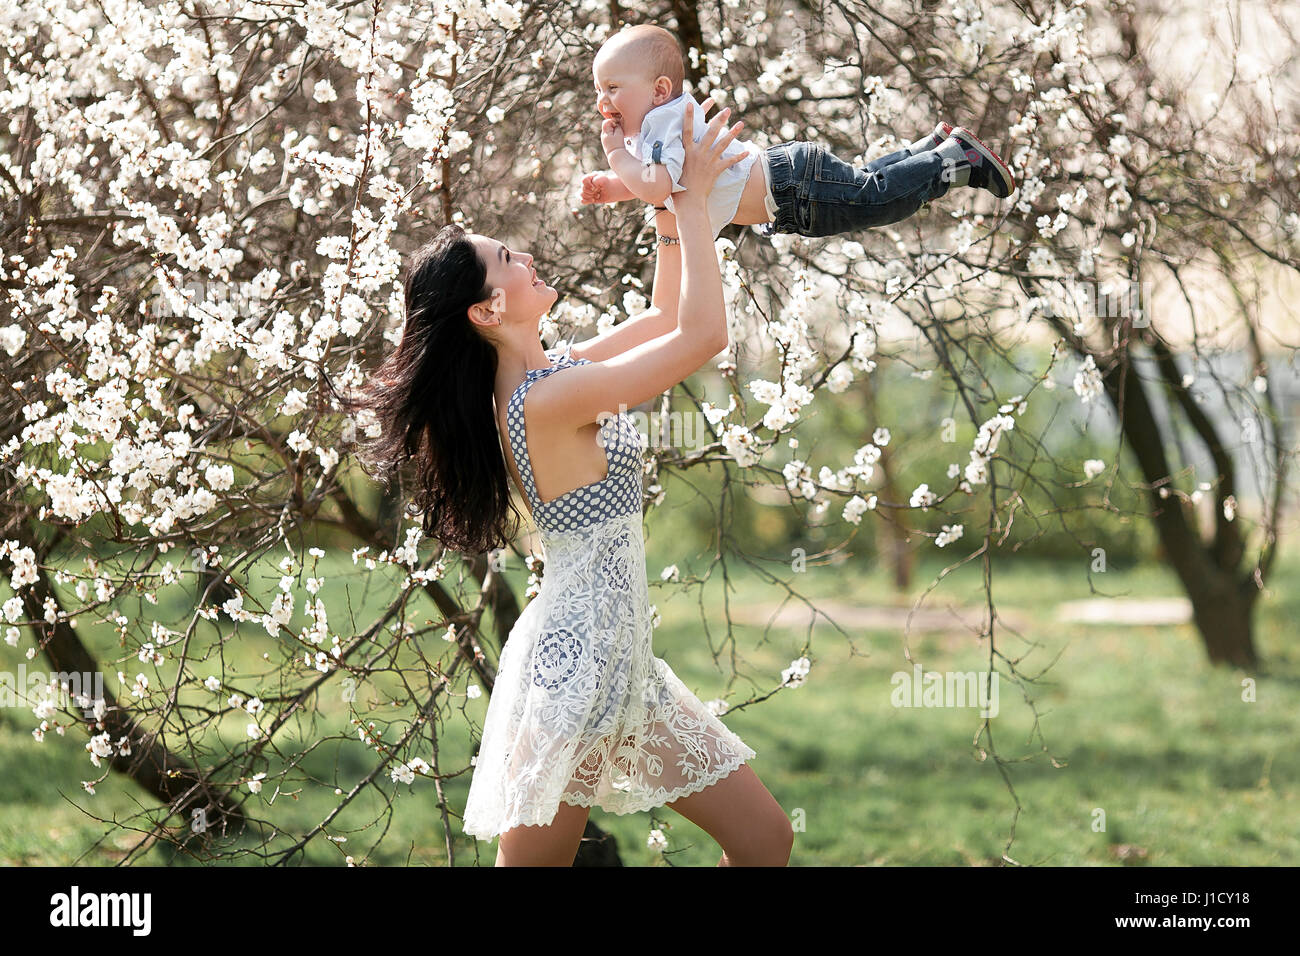 Young mother playing with  her baby on walk in blooming garden. She tosses up baby and they laugh joyful. - Stock Image